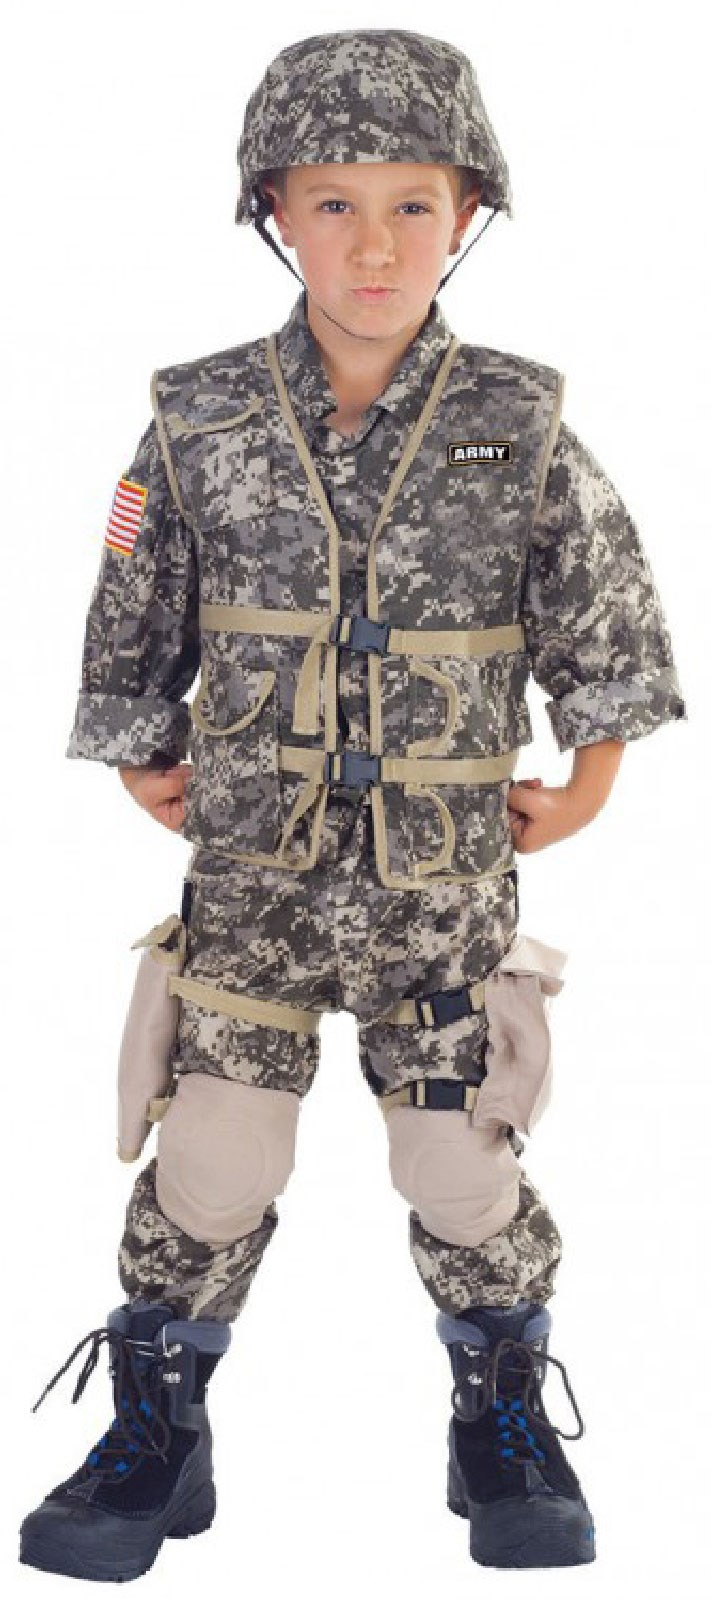 Army Ranger Deluxe Child Costume | BuyCostumes.com